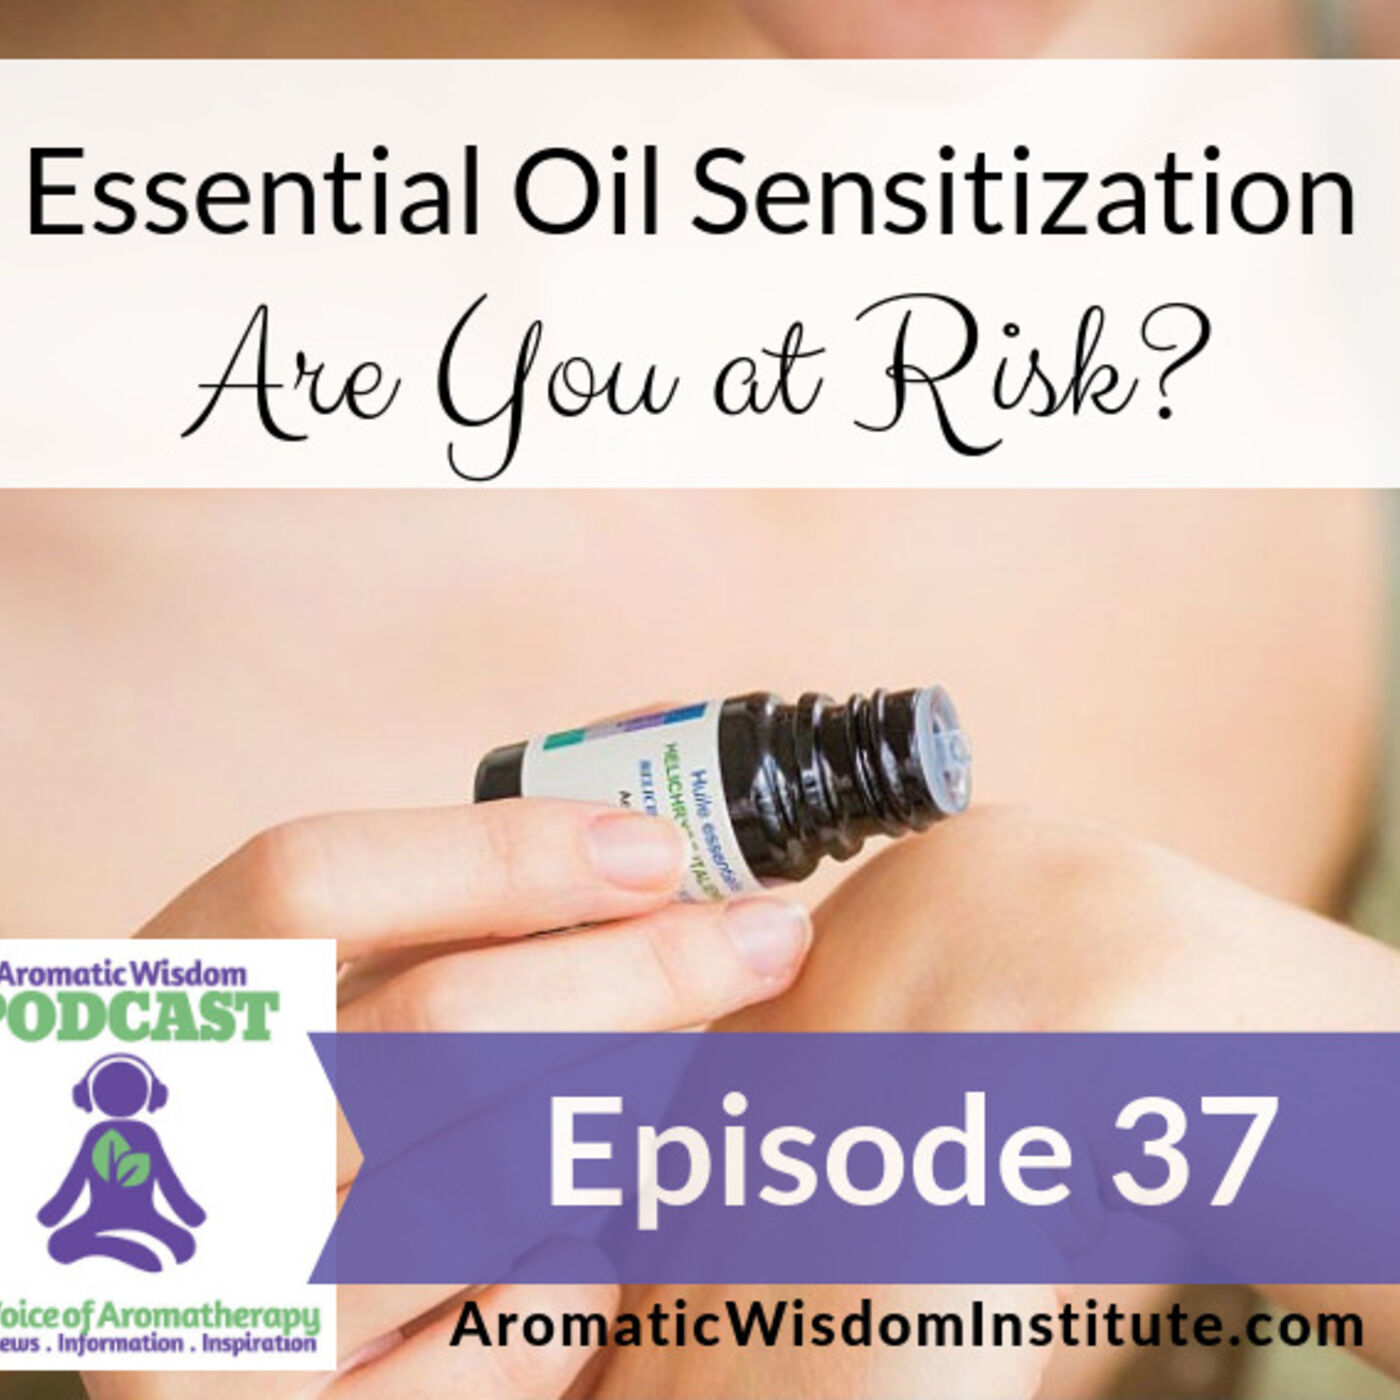 AWP 037: Essential Oil Sensitization: Are You at Risk?